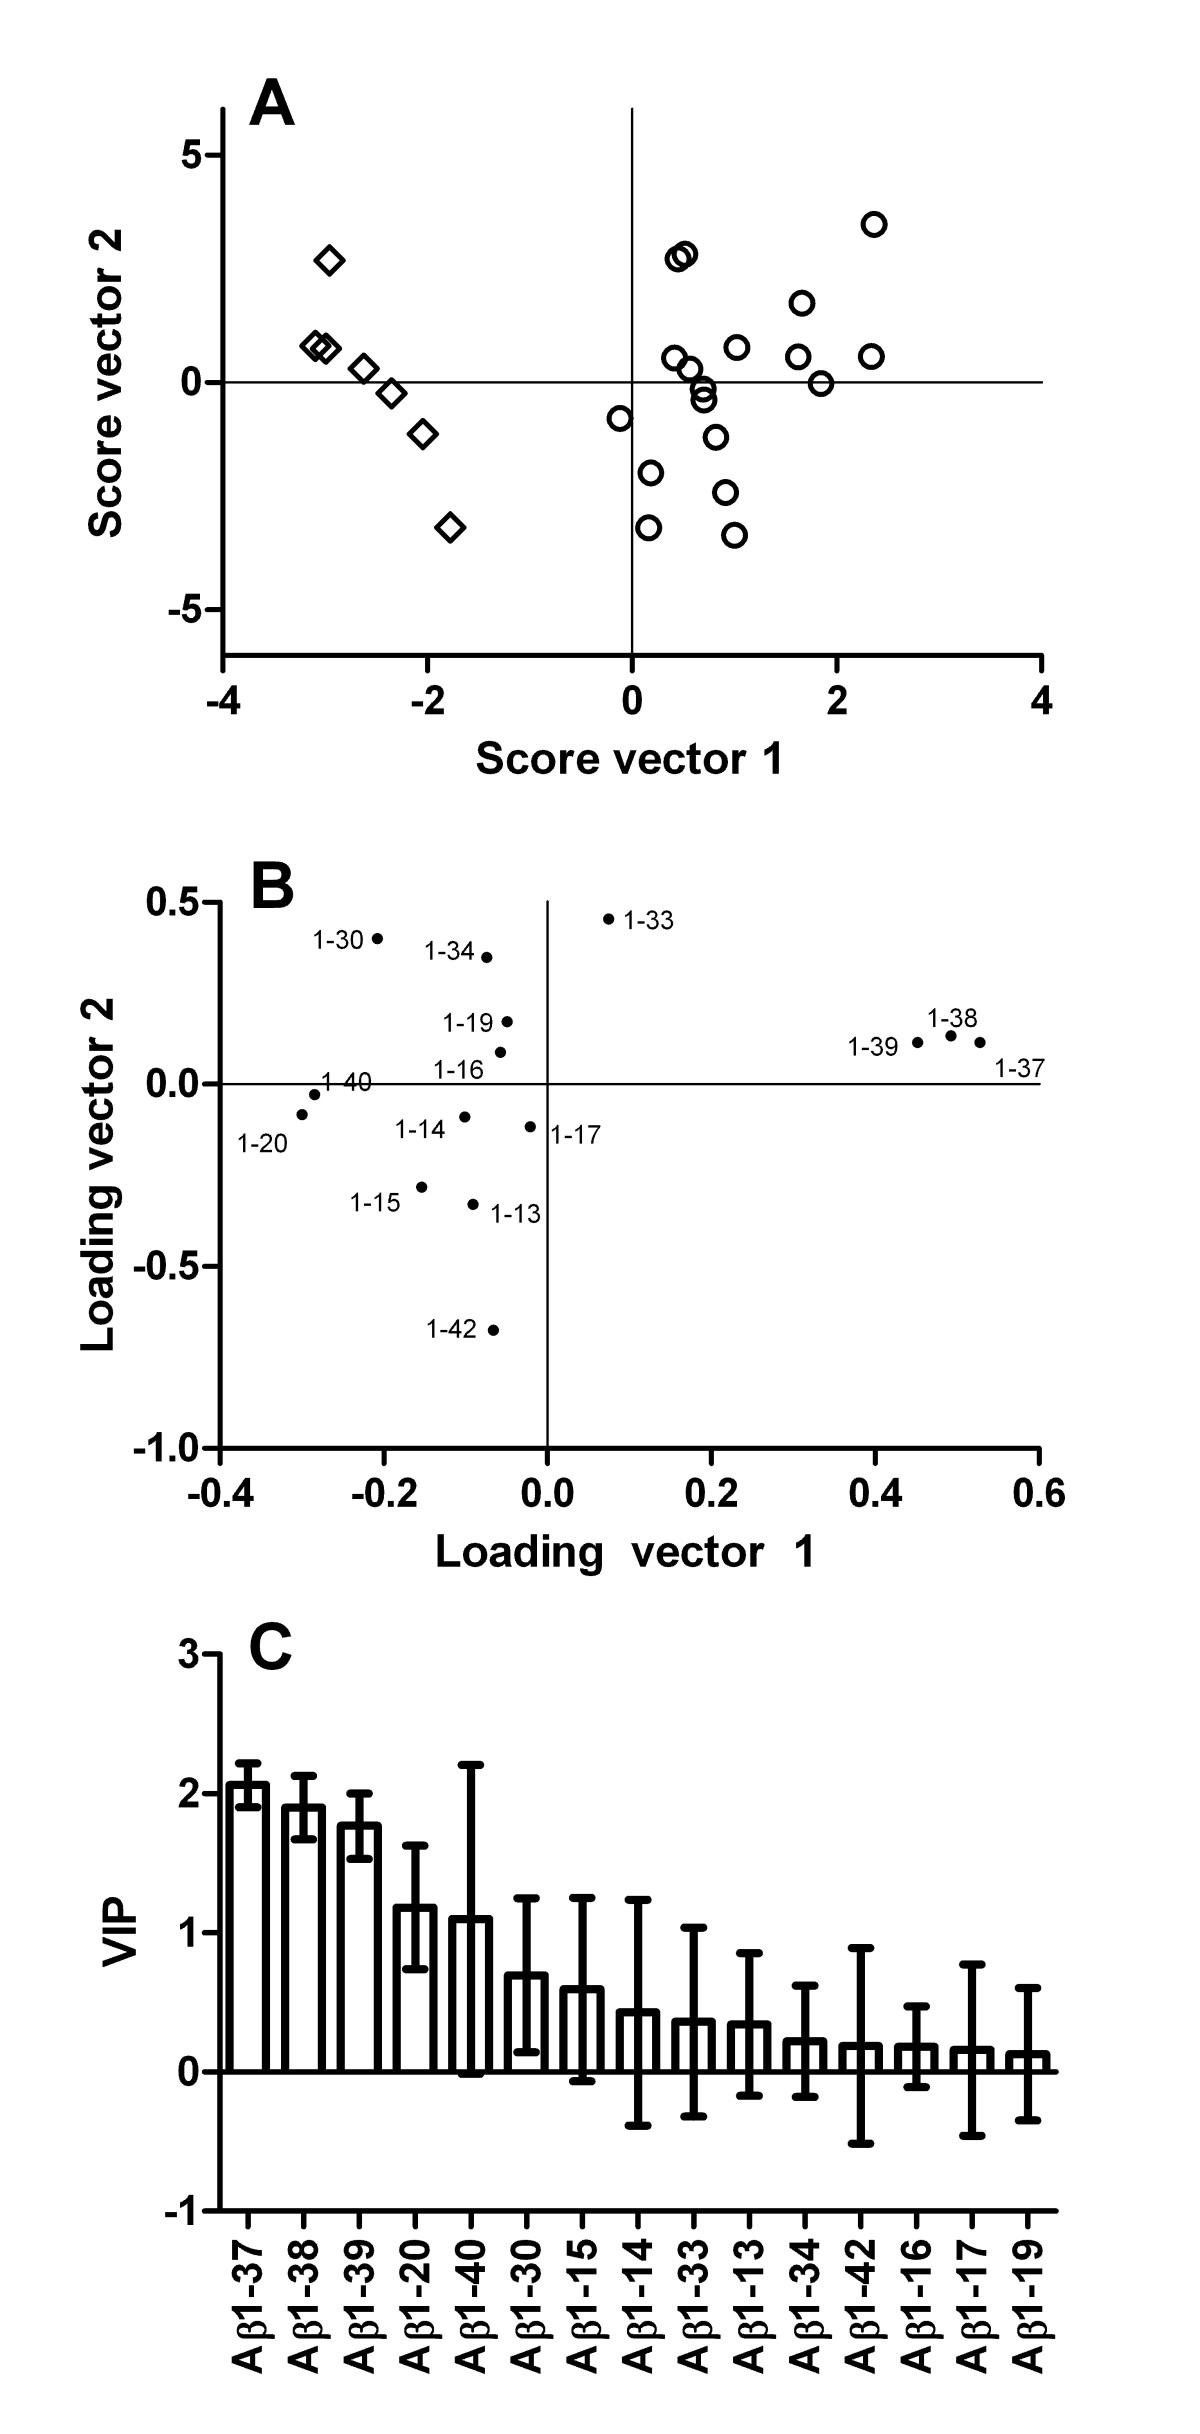 http://static-content.springer.com/image/art%3A10.1186%2F1750-1326-5-2/MediaObjects/13024_2009_Article_120_Fig5_HTML.jpg